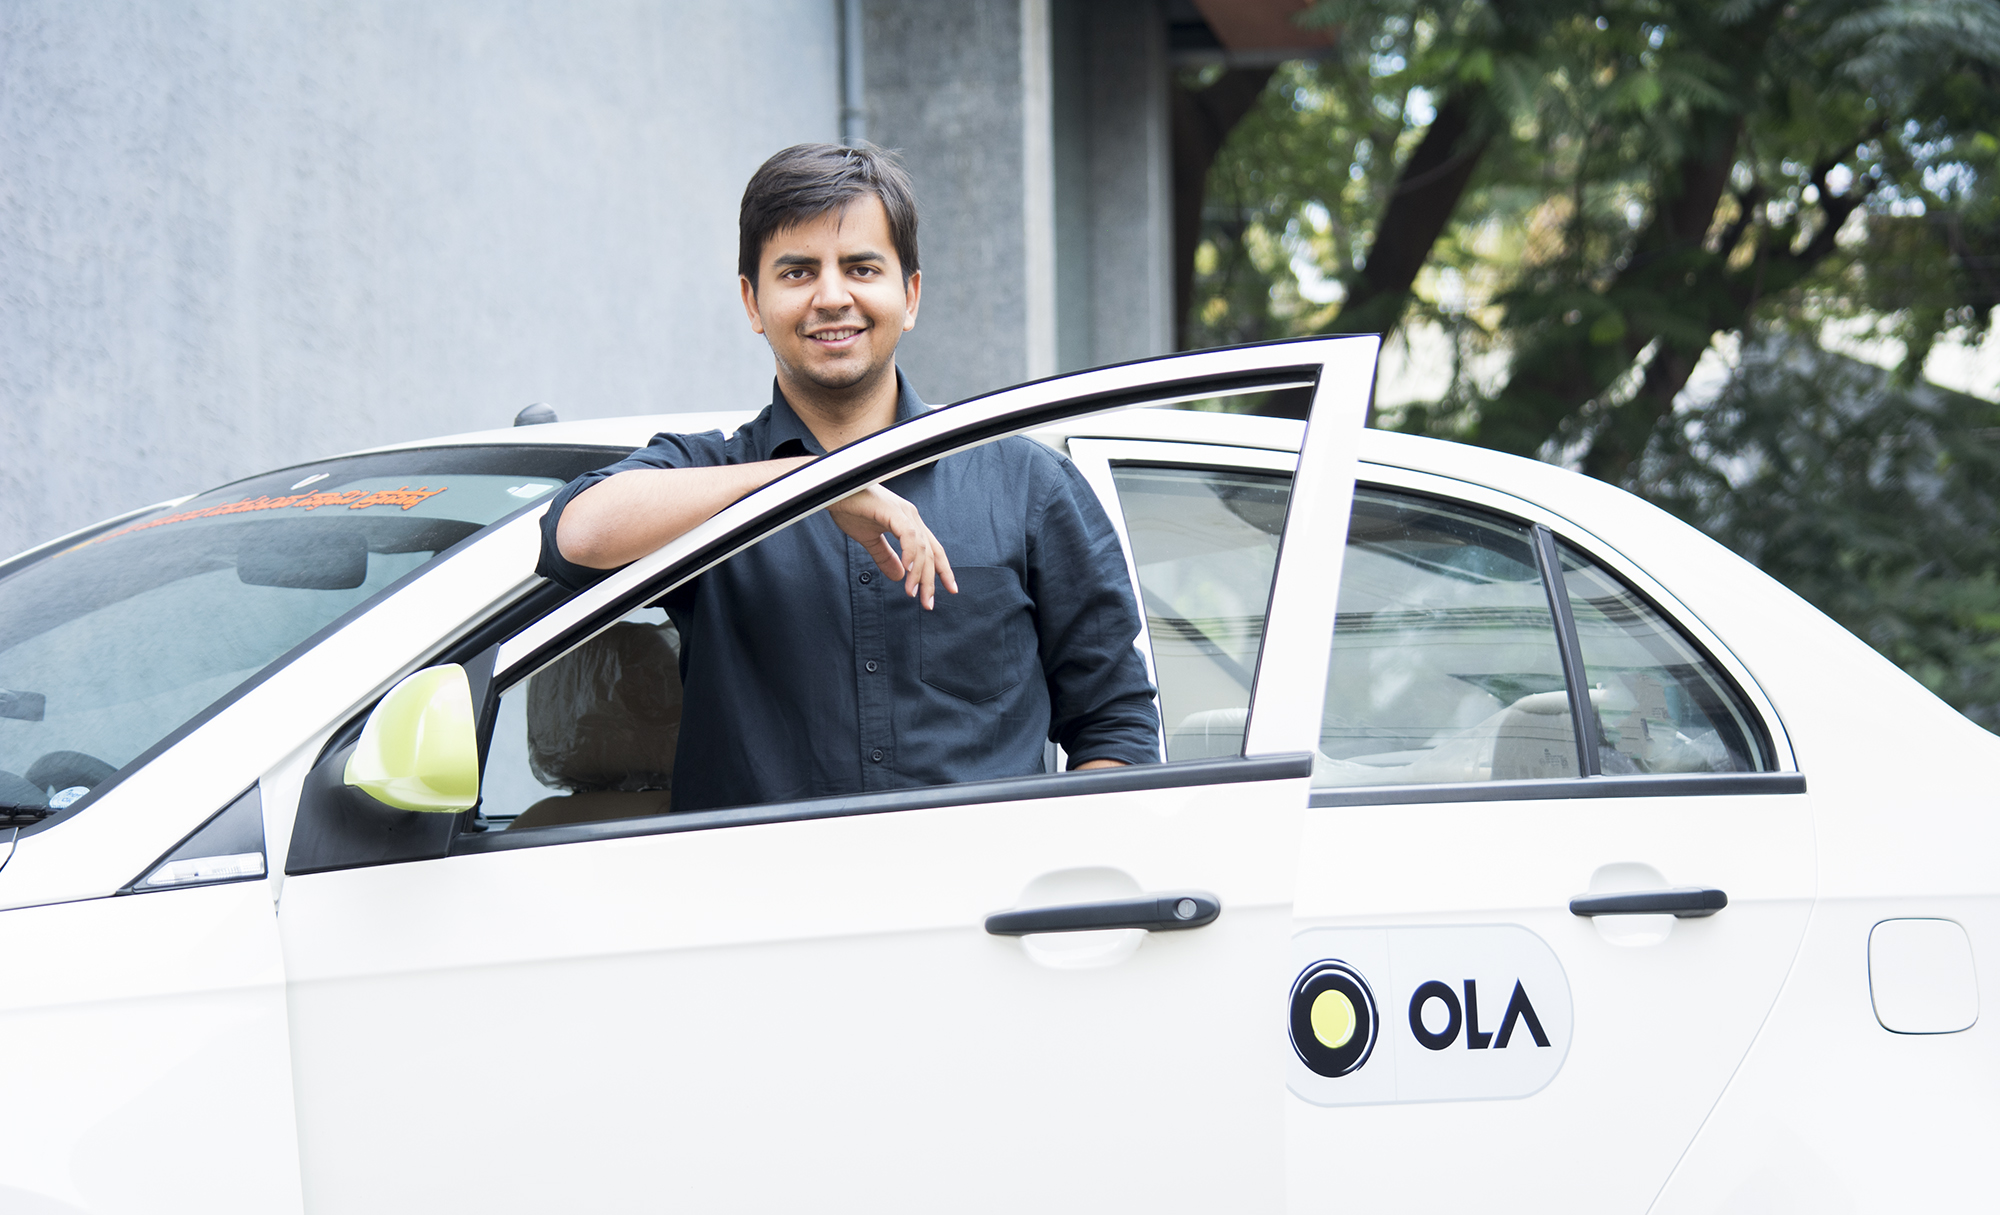 Success Story Of OLA Cabs CEO Bhavish Aggarwal An IITian